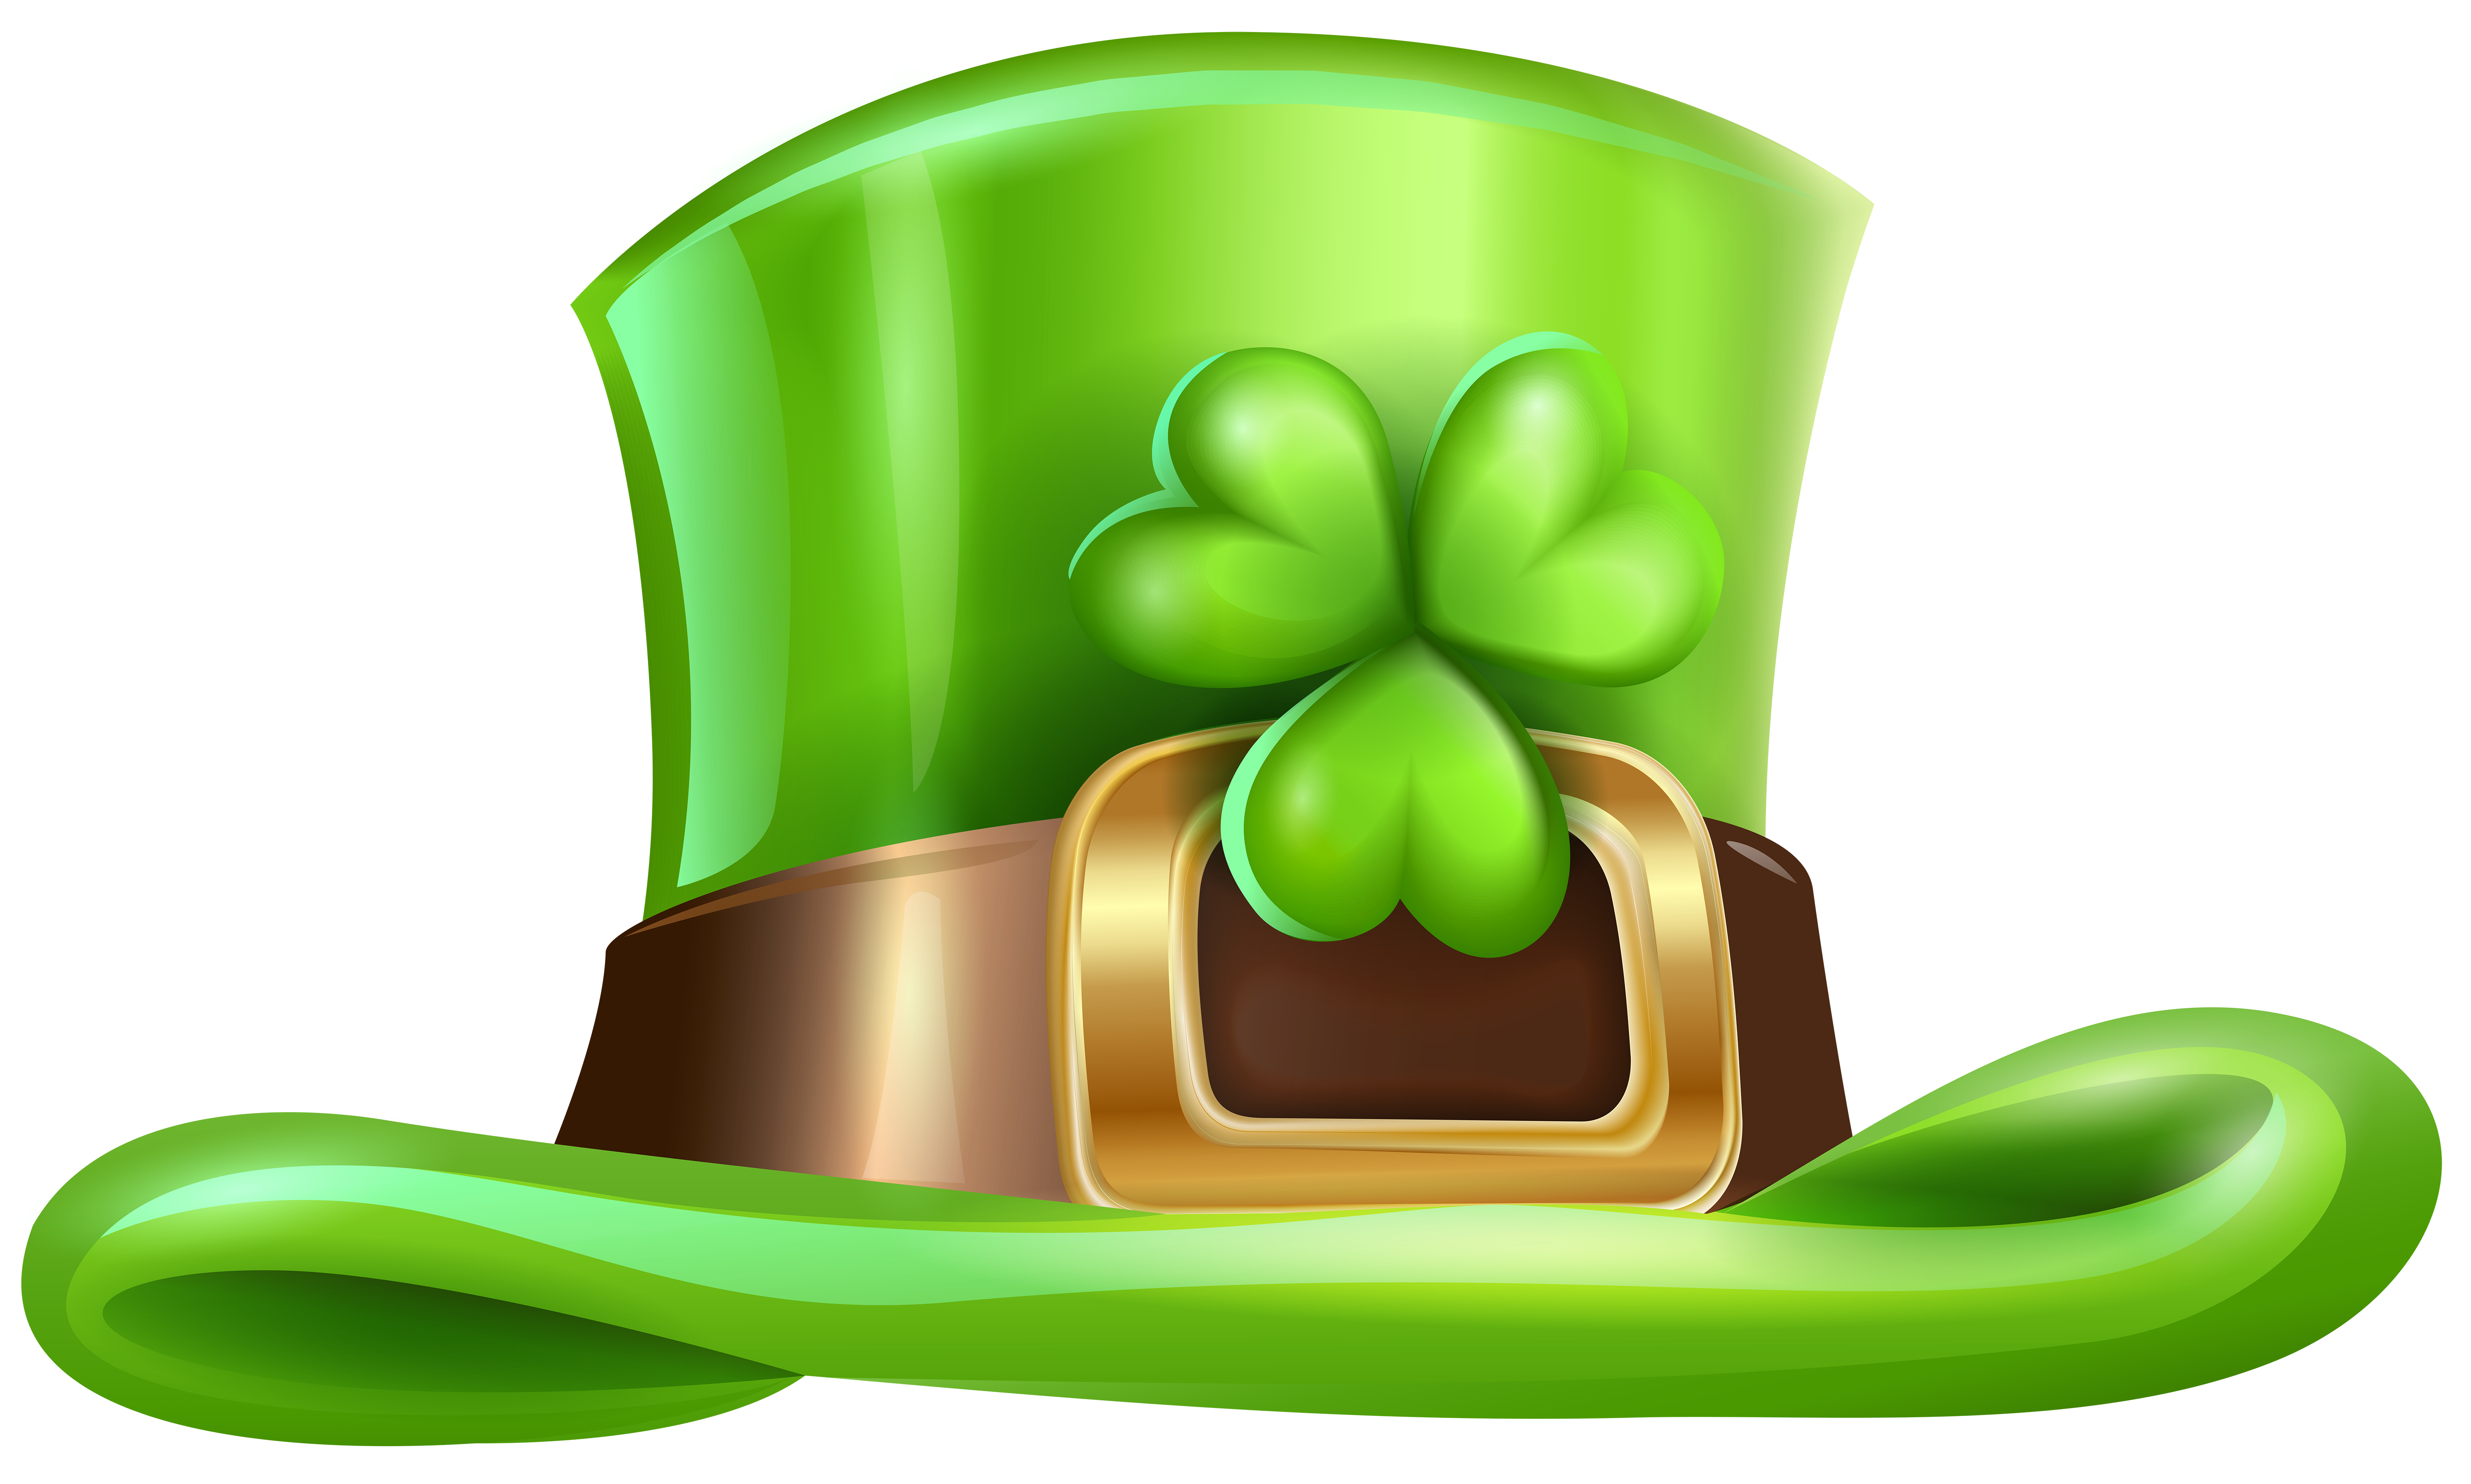 png library library Patricks day hat with. St patrick clipart